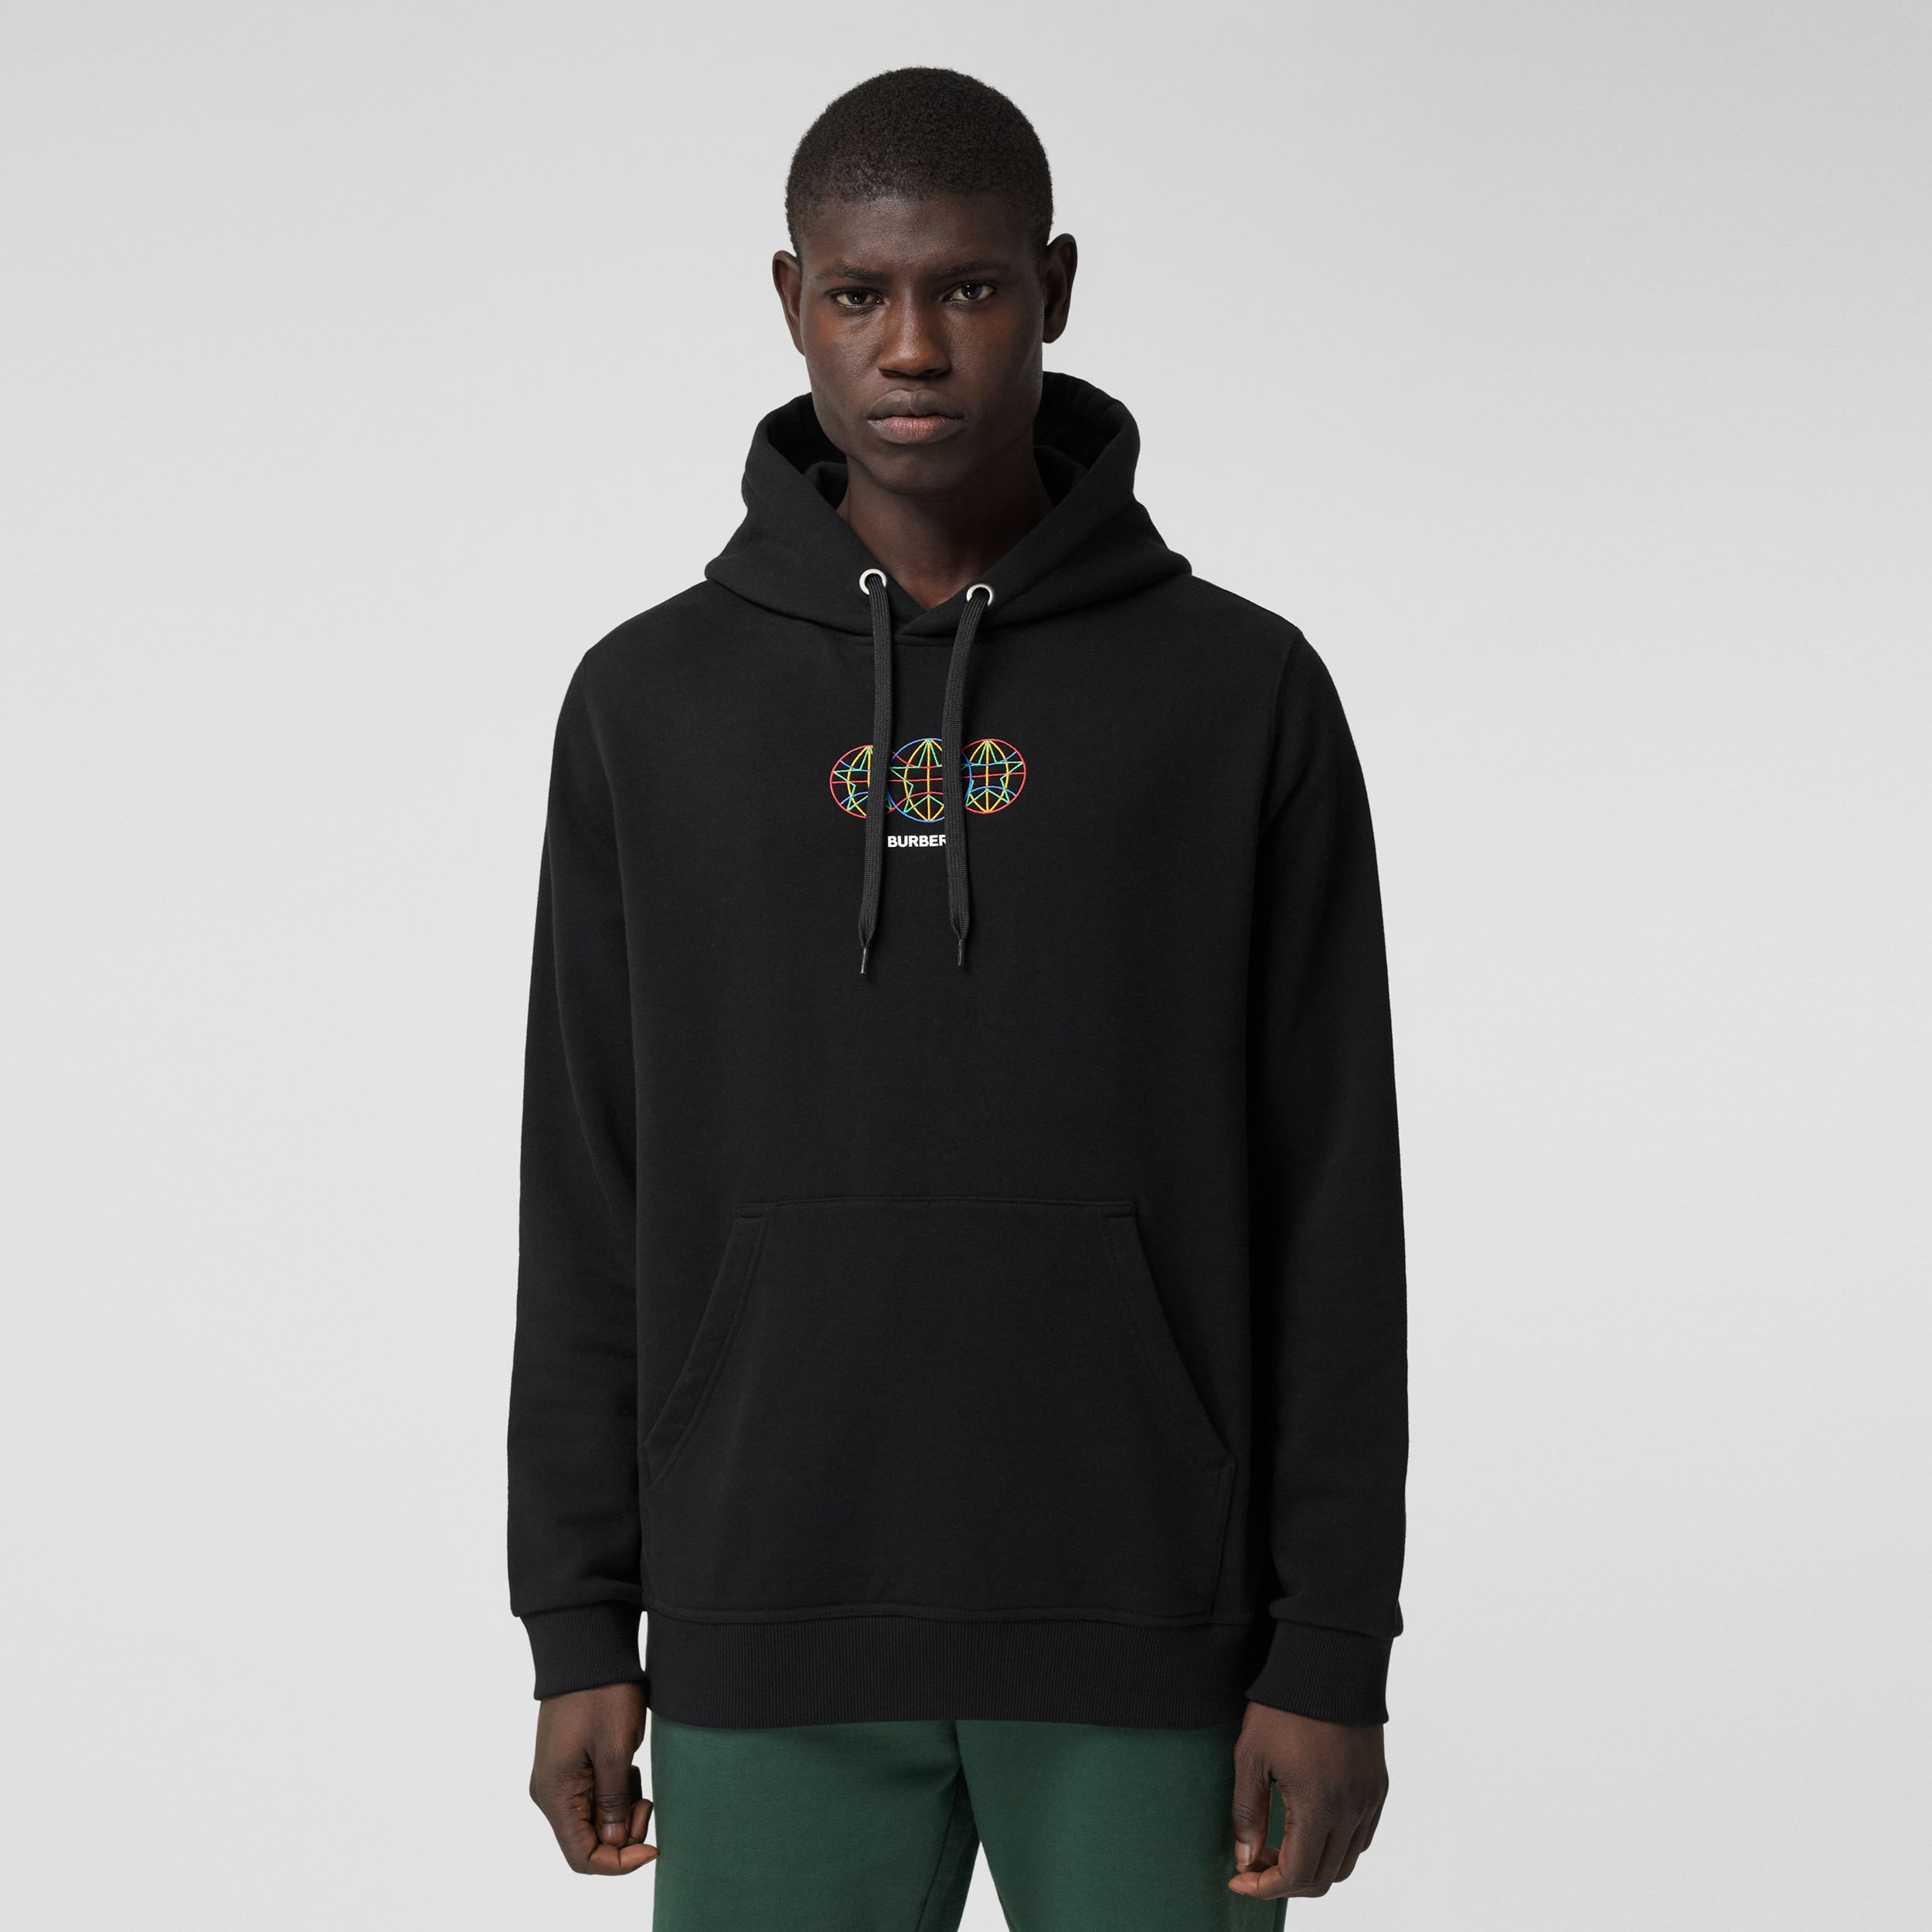 Embroidered Globe Graphic Cotton Hoodie in Black - Men | Burberry - 1